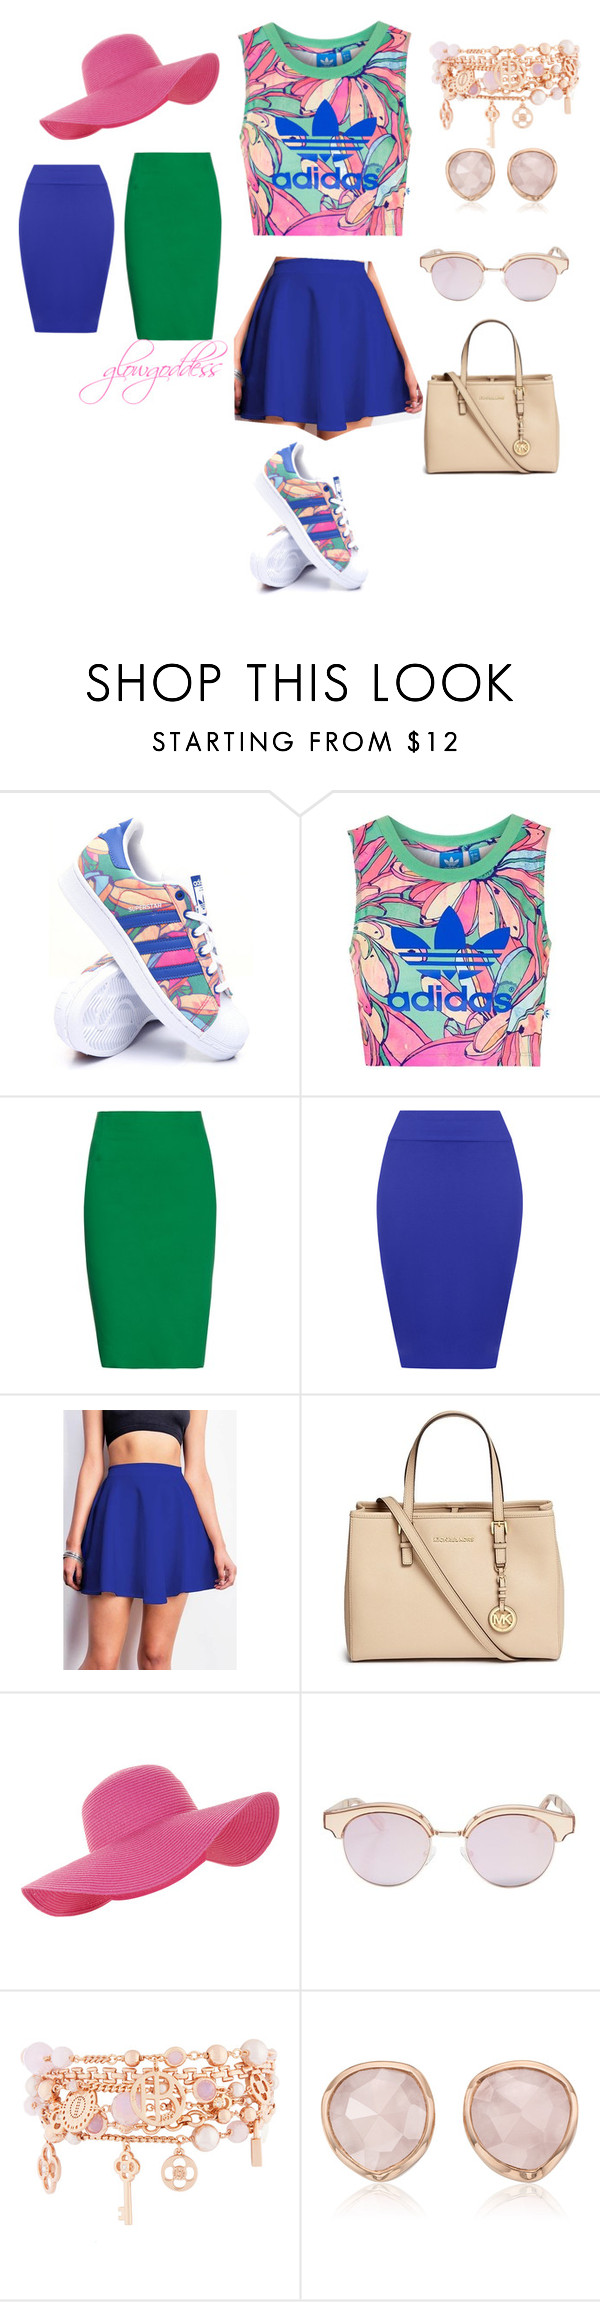 """""""casual"""" by glowgoddess on Polyvore featuring adidas, Topshop, Tomas Maier, WearAll, Michael Kors, Accessorize, Le Specs, Henri Bendel and Monica Vinader"""